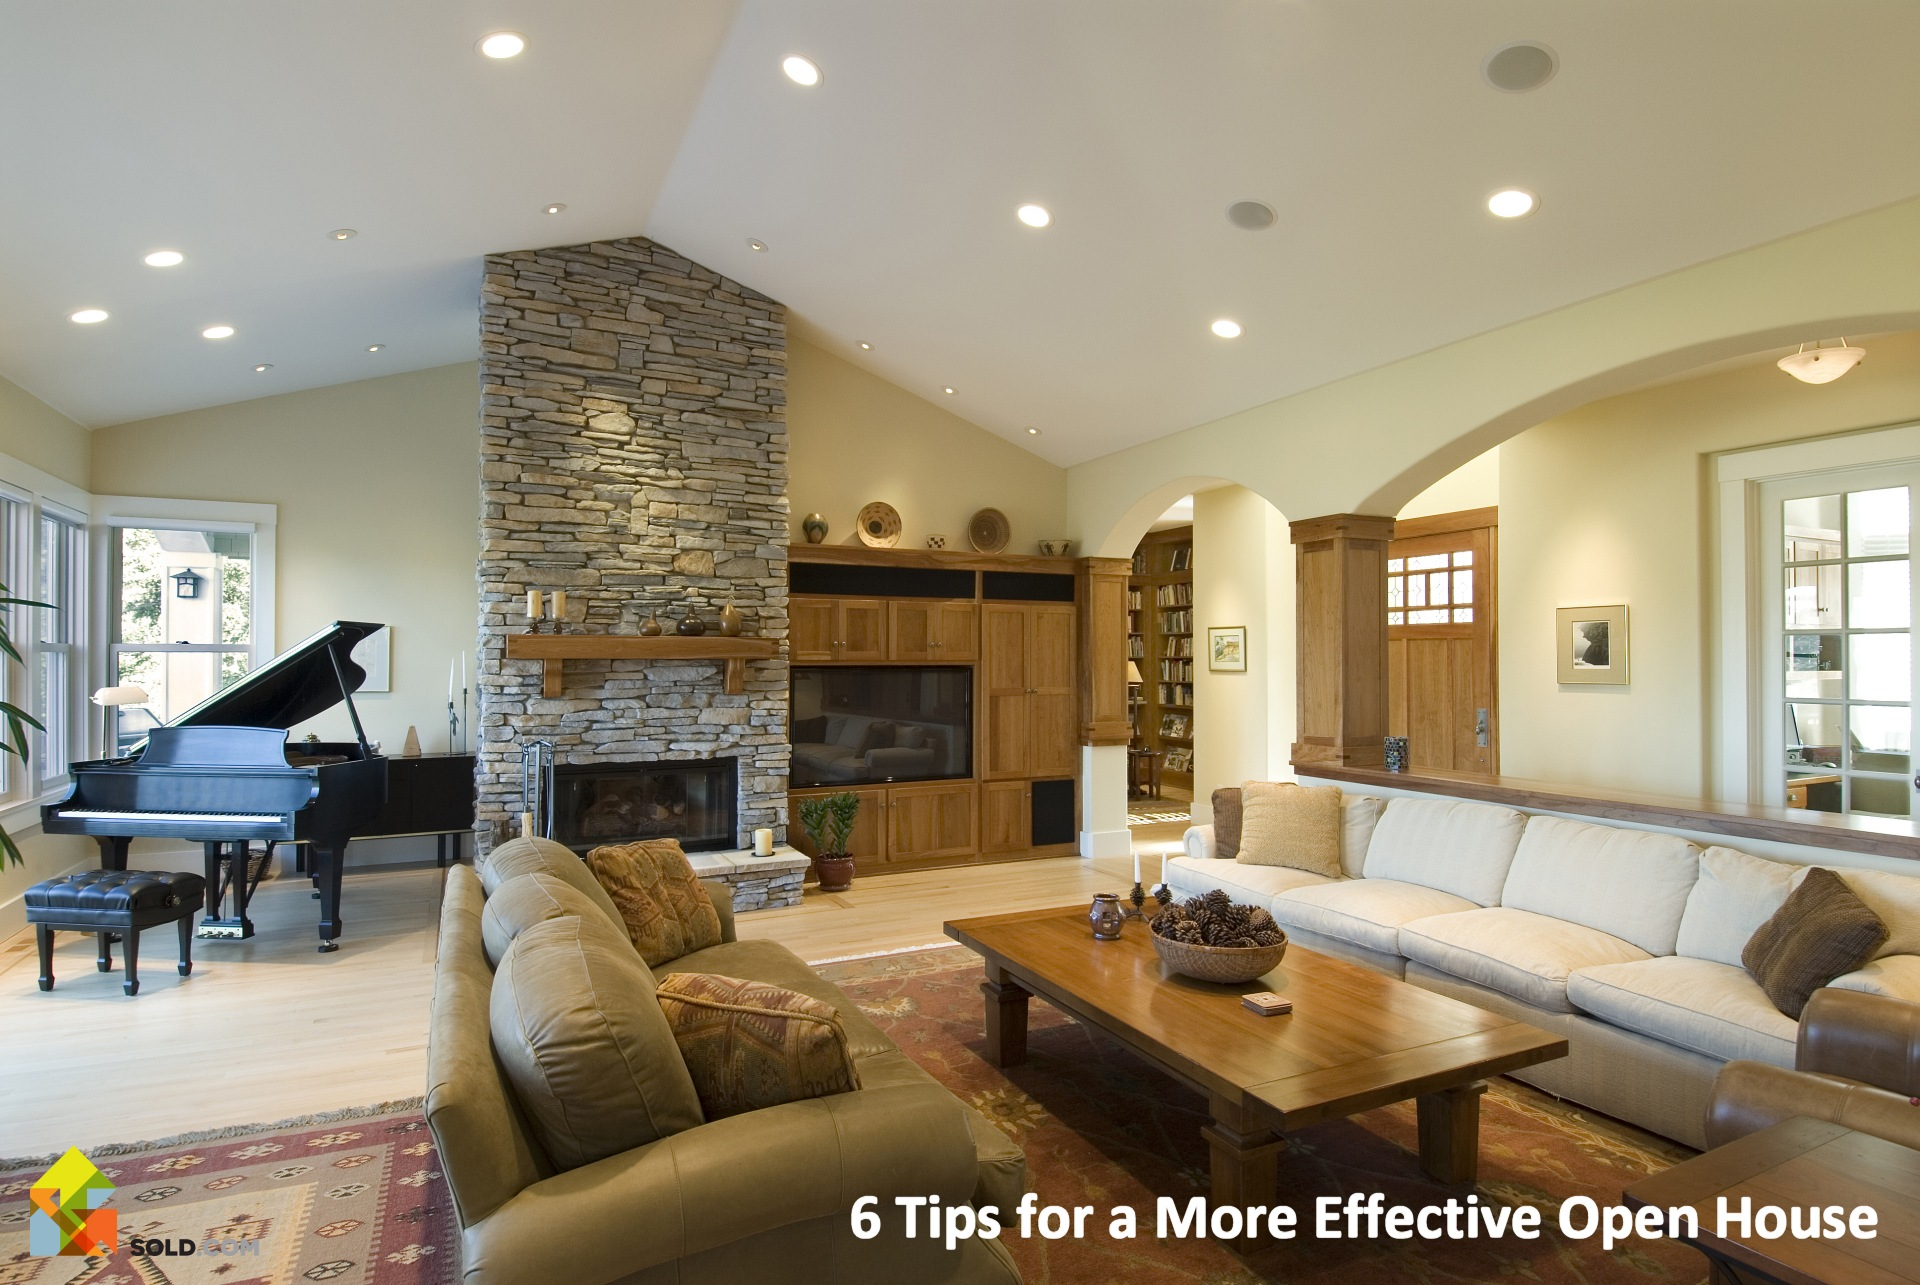 6 Tips for a More Effective Open House